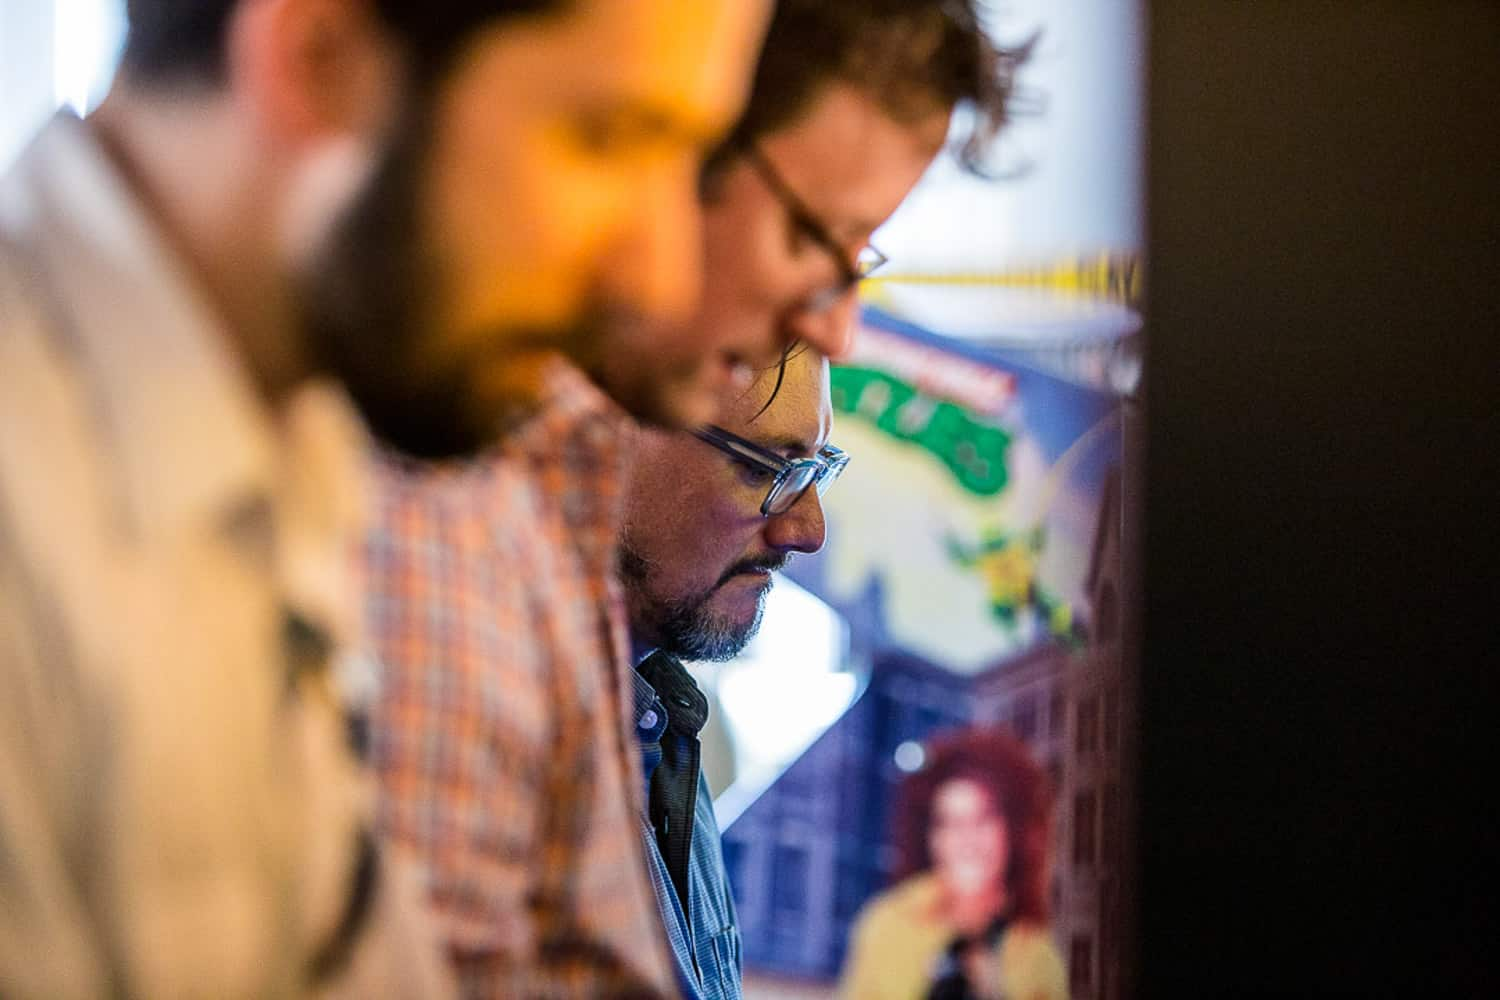 Event photography of a line of Splyce employees playing video games.